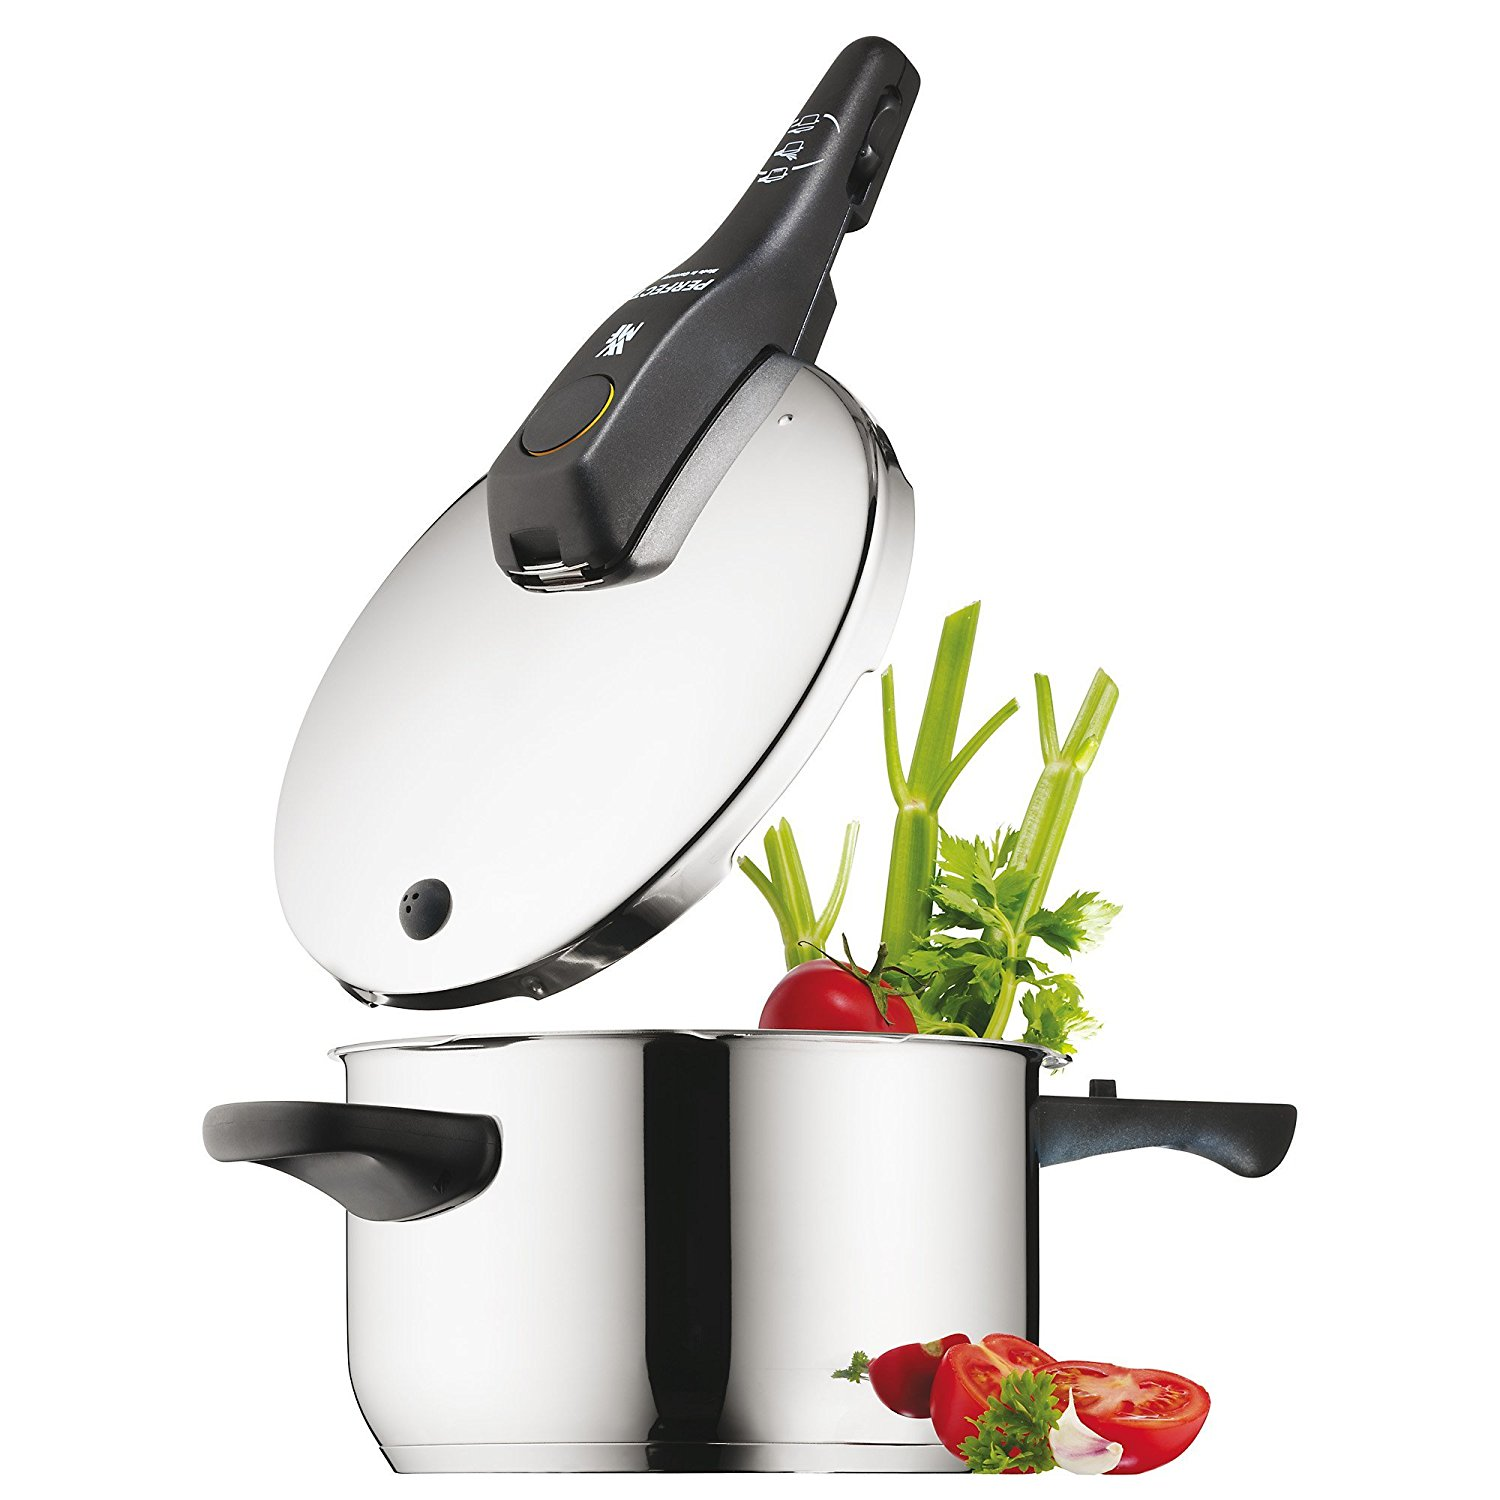 Nồi áp suất WMF Perfect Plus 4.5l - Made in Germany